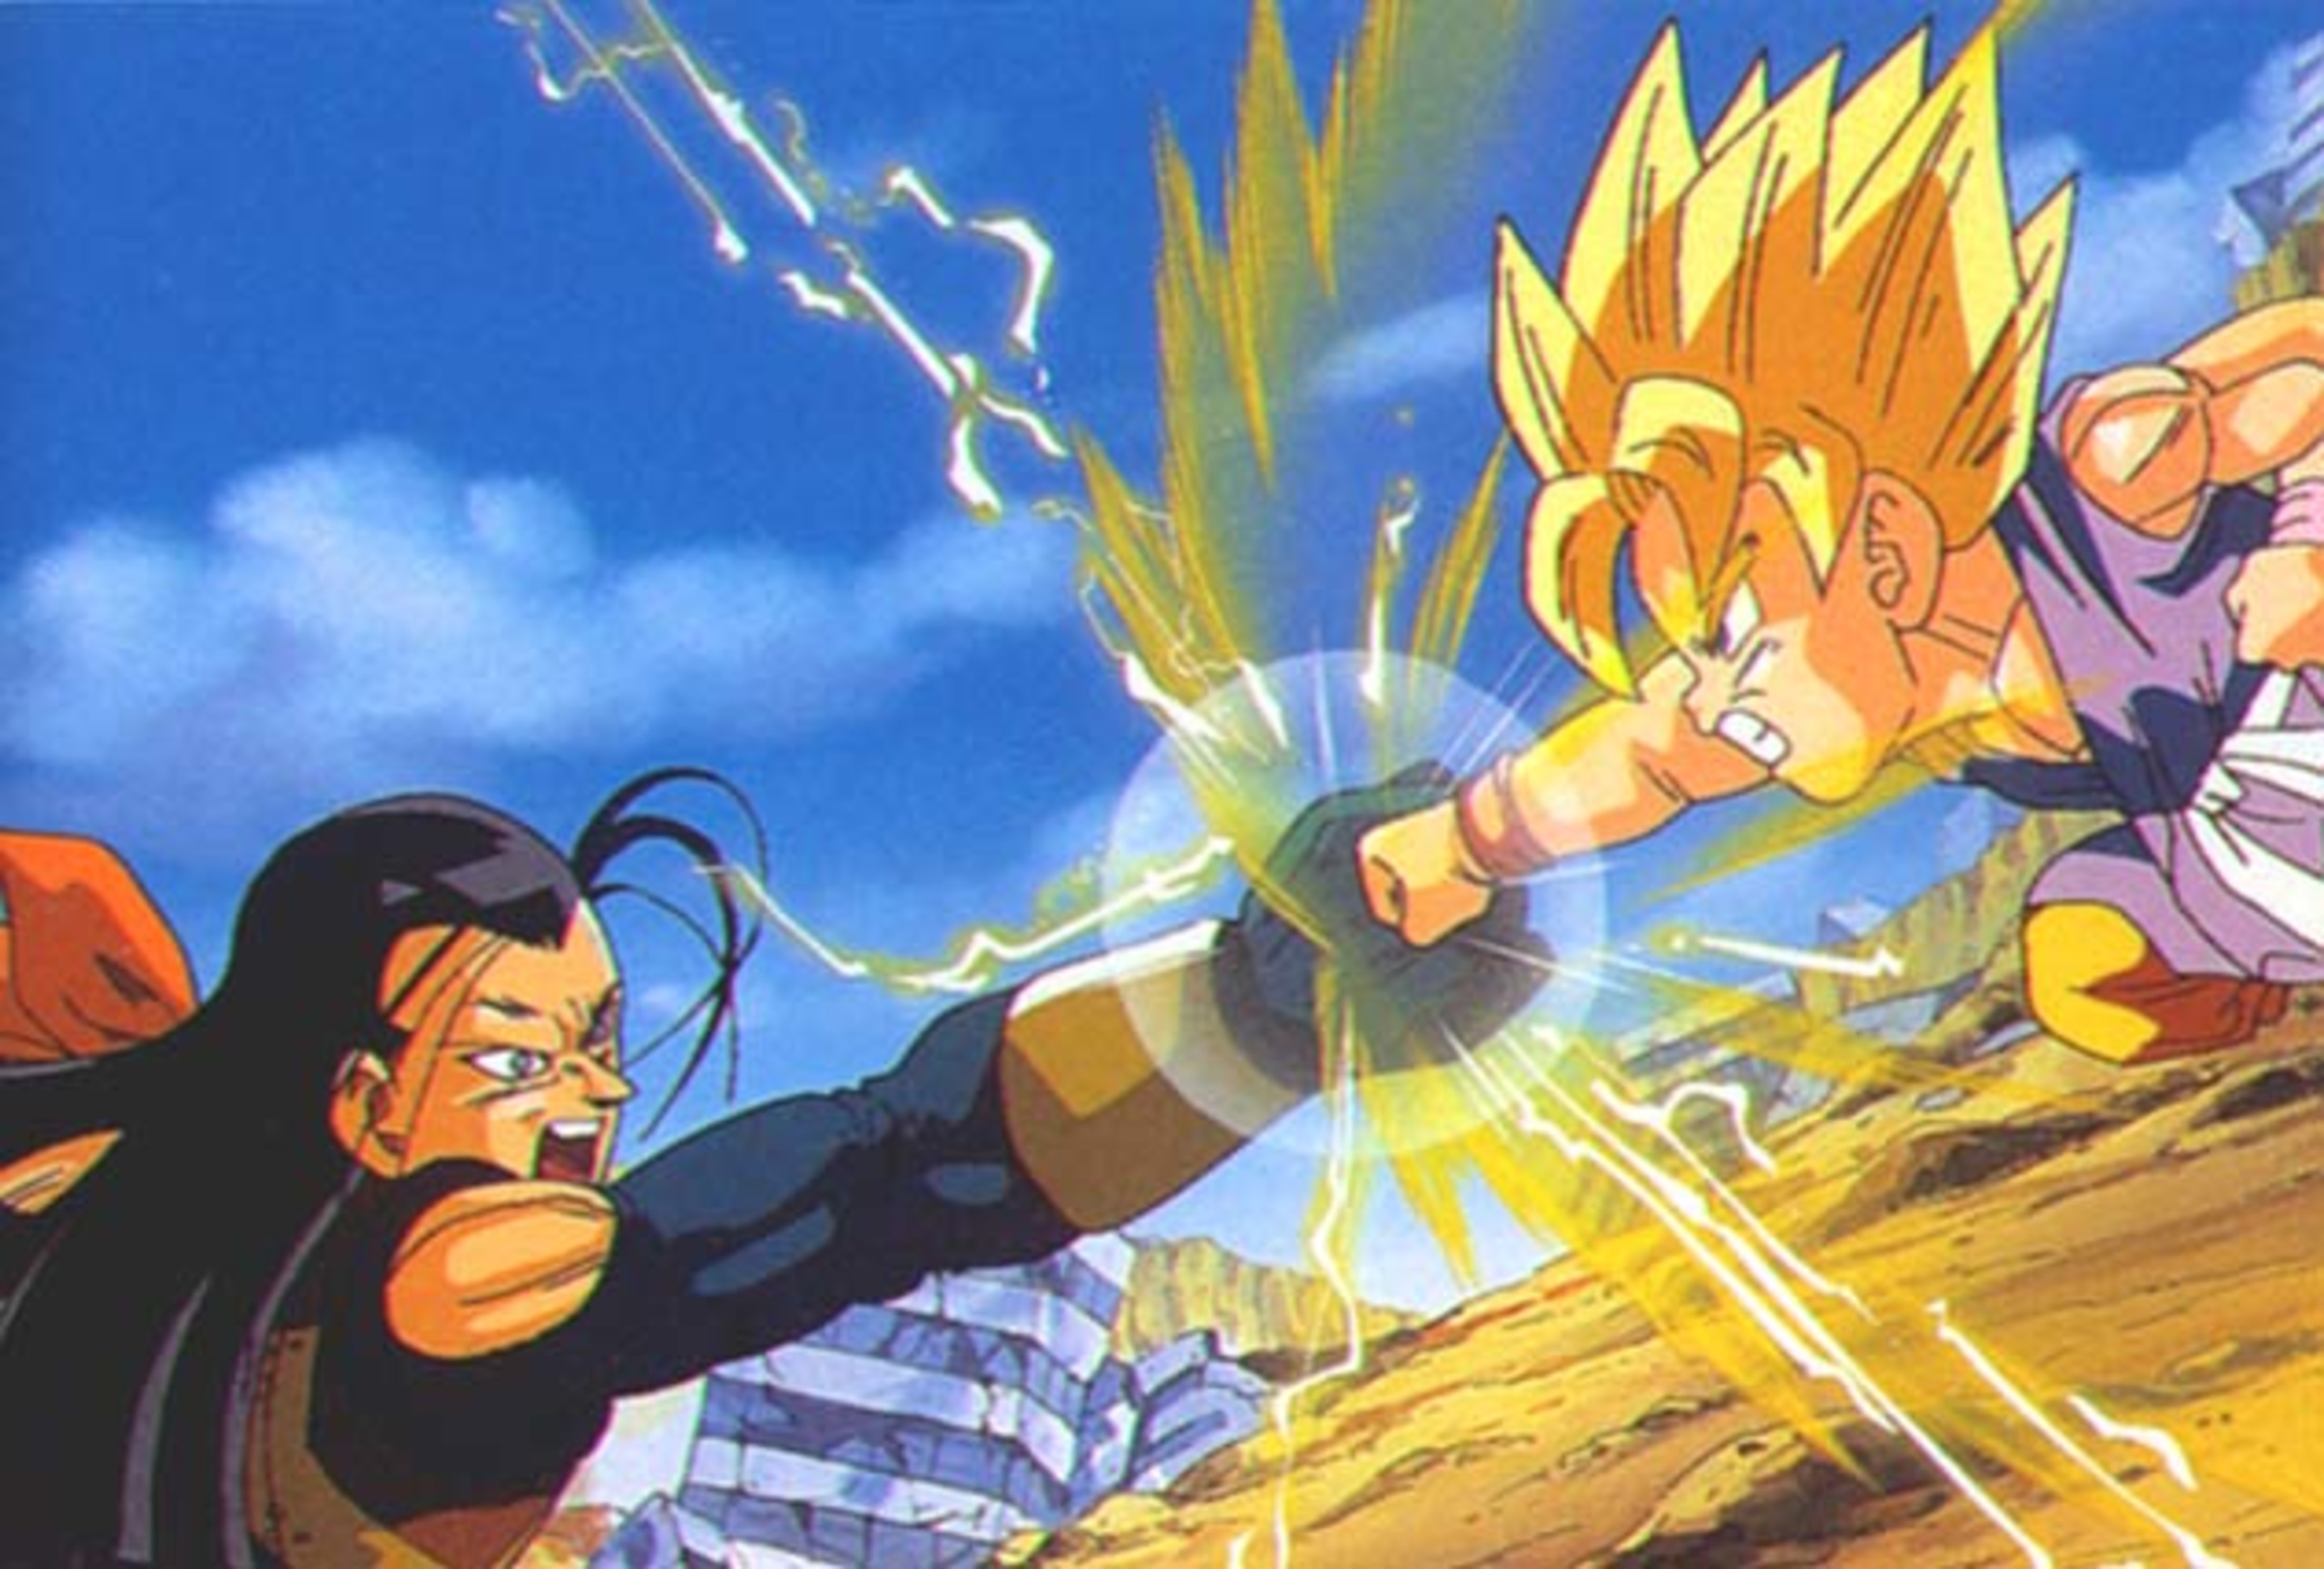 File:Ssj kidgoku vs super android 17.jpg